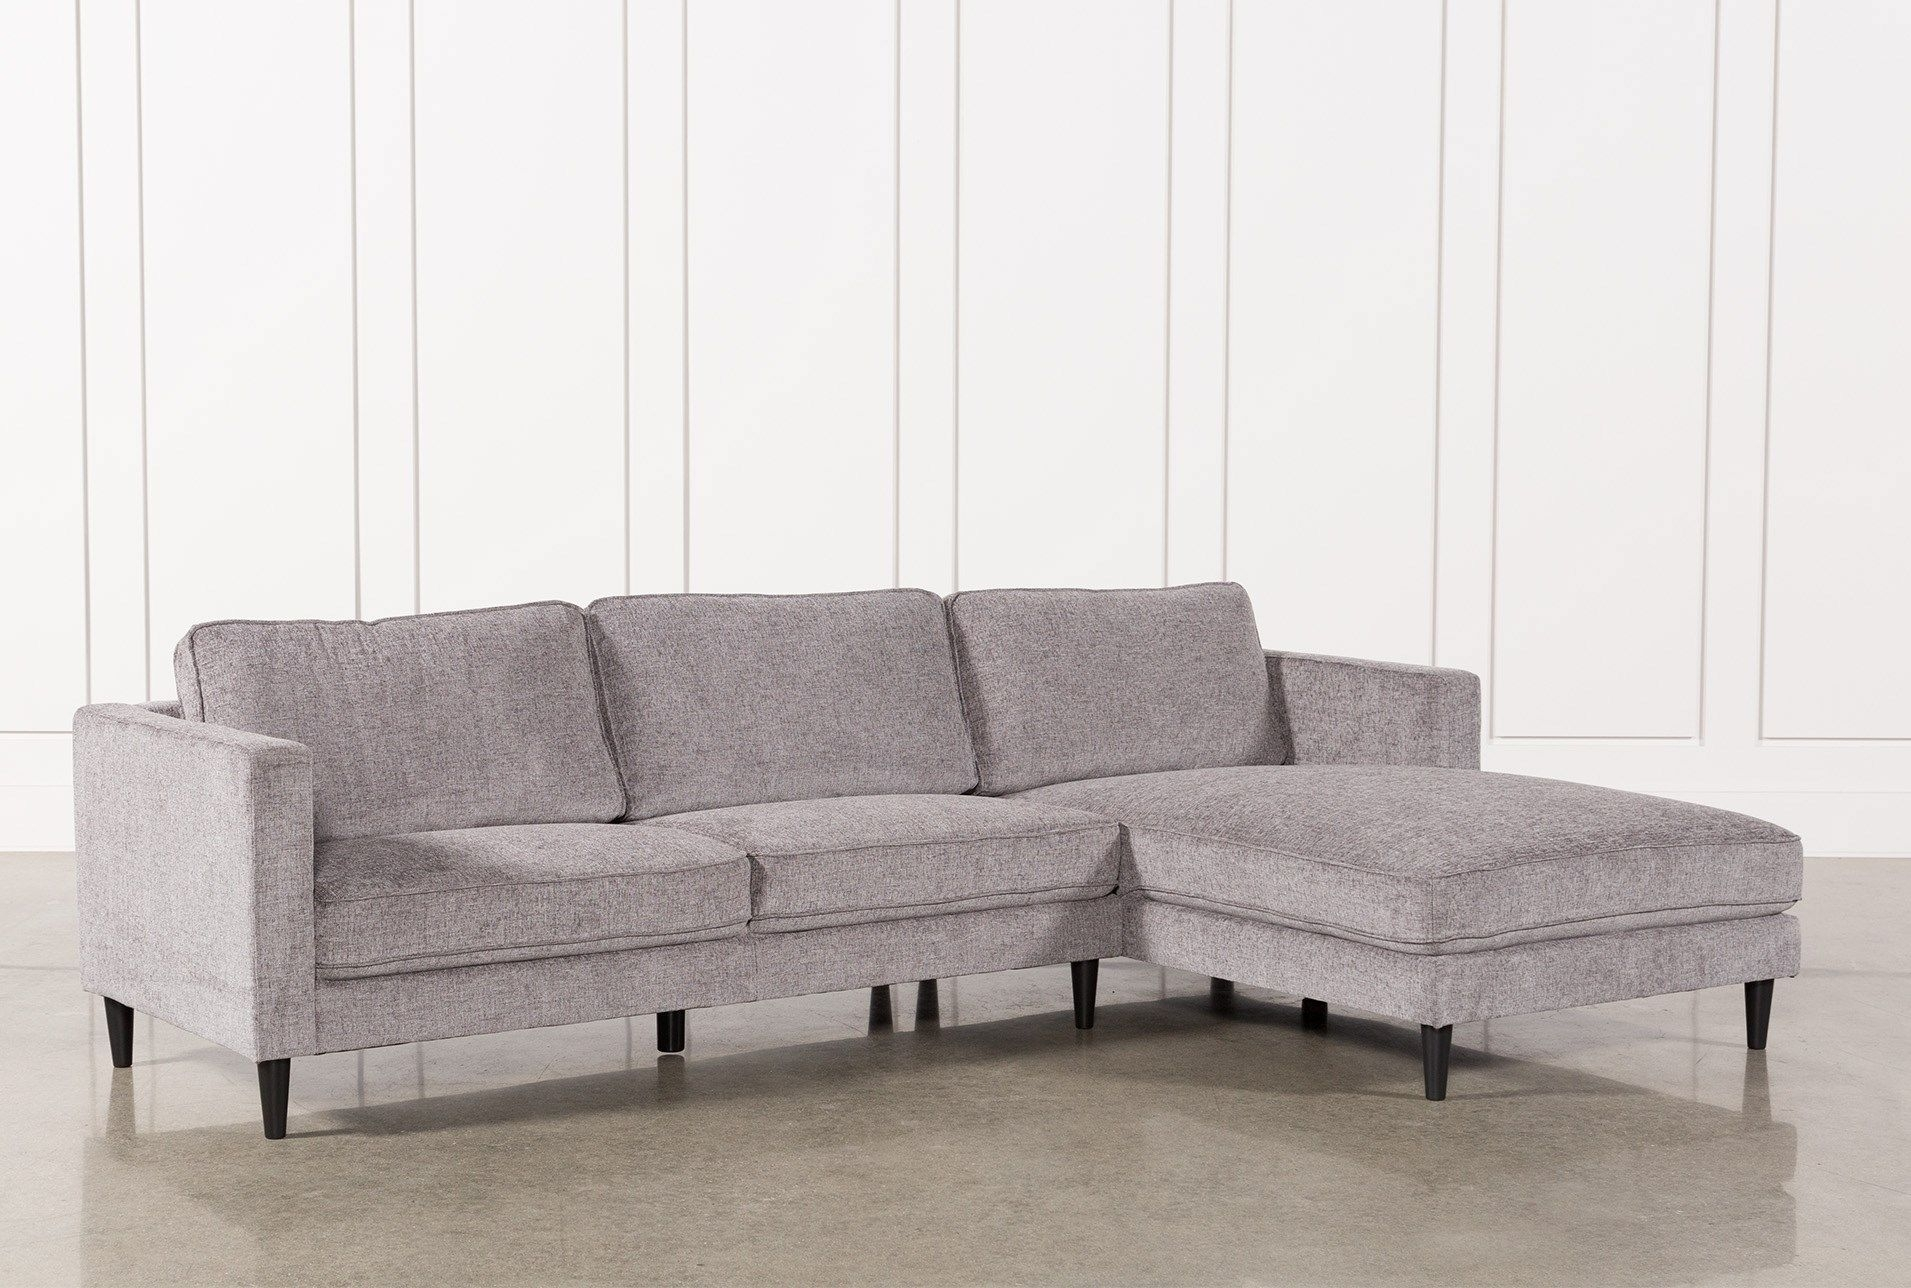 Cosmos Grey 2 Piece Sectional W/raf Chaise | Furniture | Pinterest Regarding Aquarius Light Grey 2 Piece Sectionals With Laf Chaise (View 3 of 30)